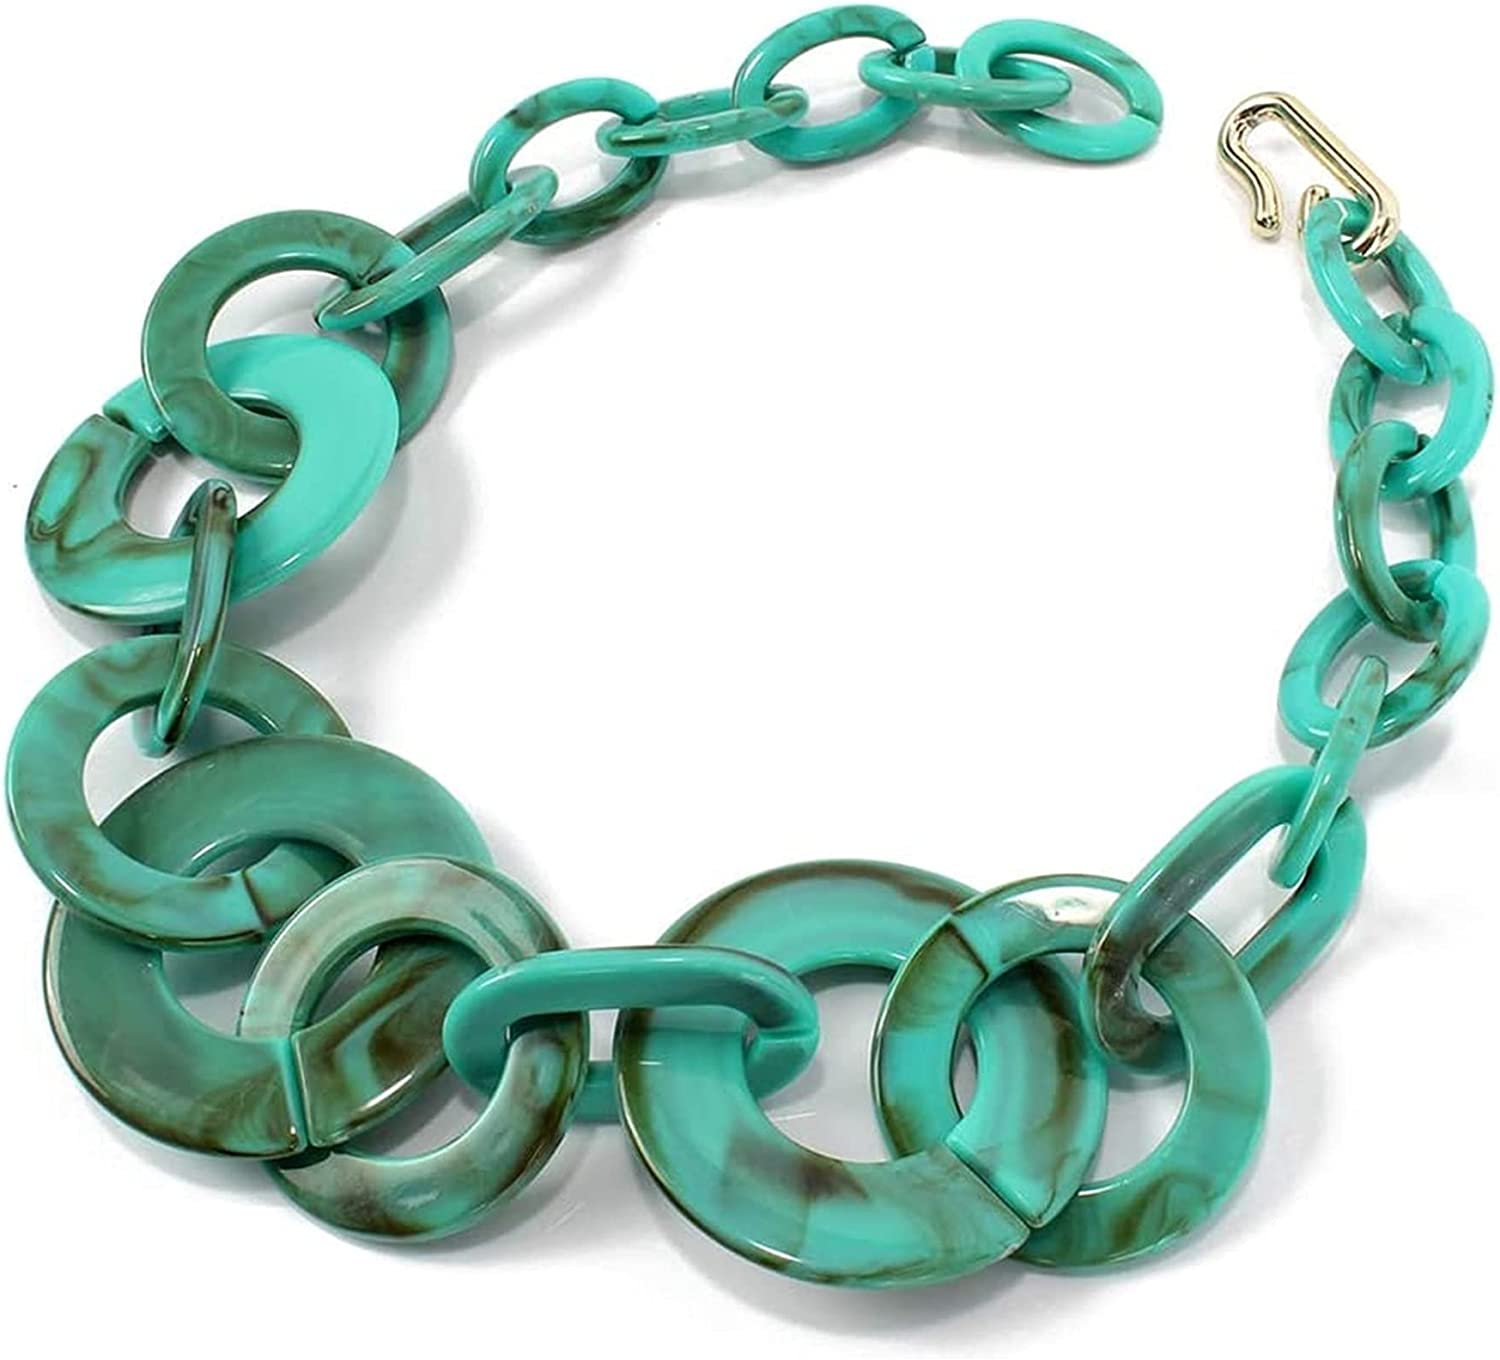 DFWY Geometric Pendant Statement Necklaces for Women,Acrylic Chunky Collar Twist Chain,Handmade Resin Exaggeration Sweater Choker Jewelry (Color : Green)